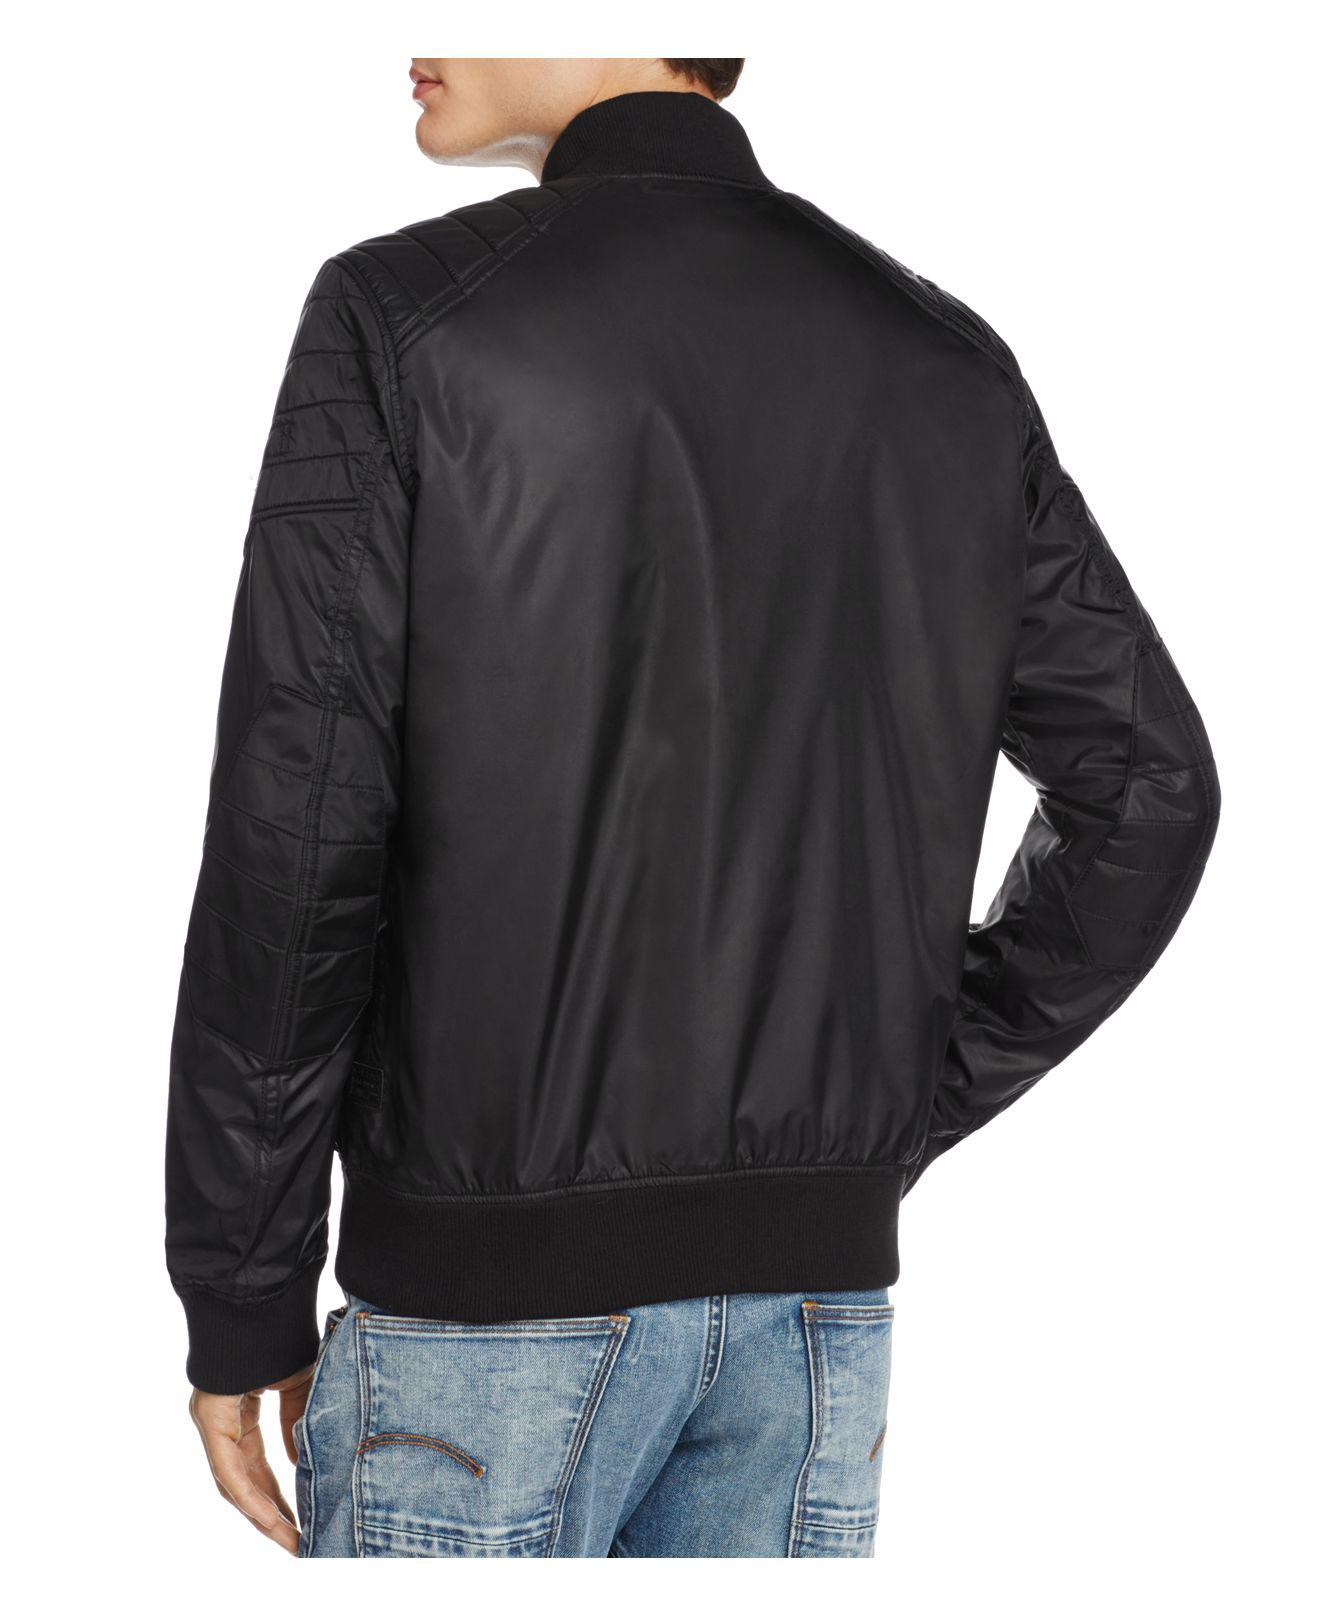 3fdefdbe8 G-Star RAW Meefic Suzaki Bomber Jacket in Black for Men - Lyst